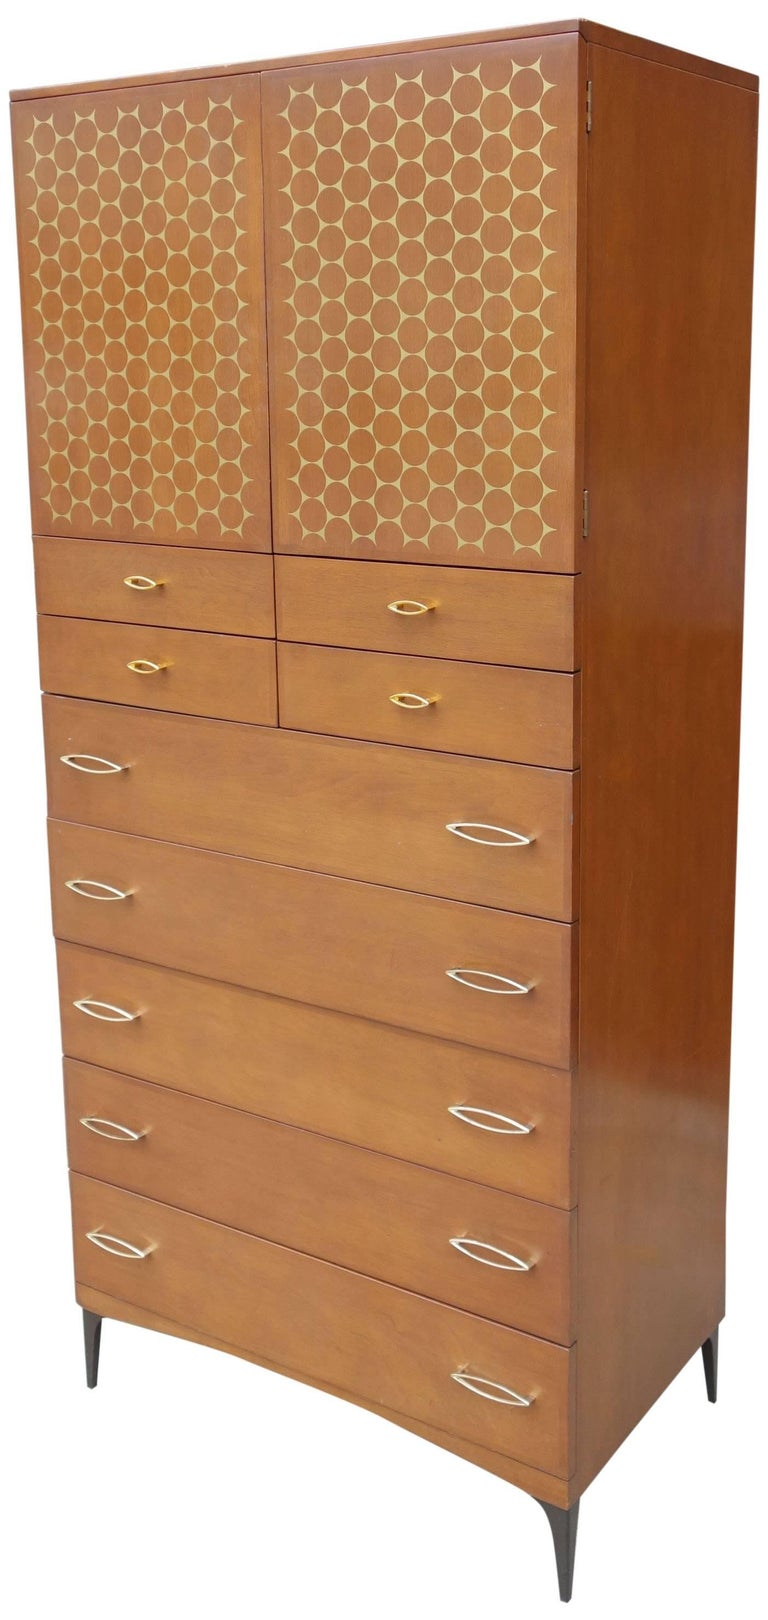 Mid-Century Modern Midcentury Heywood Wakfield Contessa Line by Carl Otto For Sale